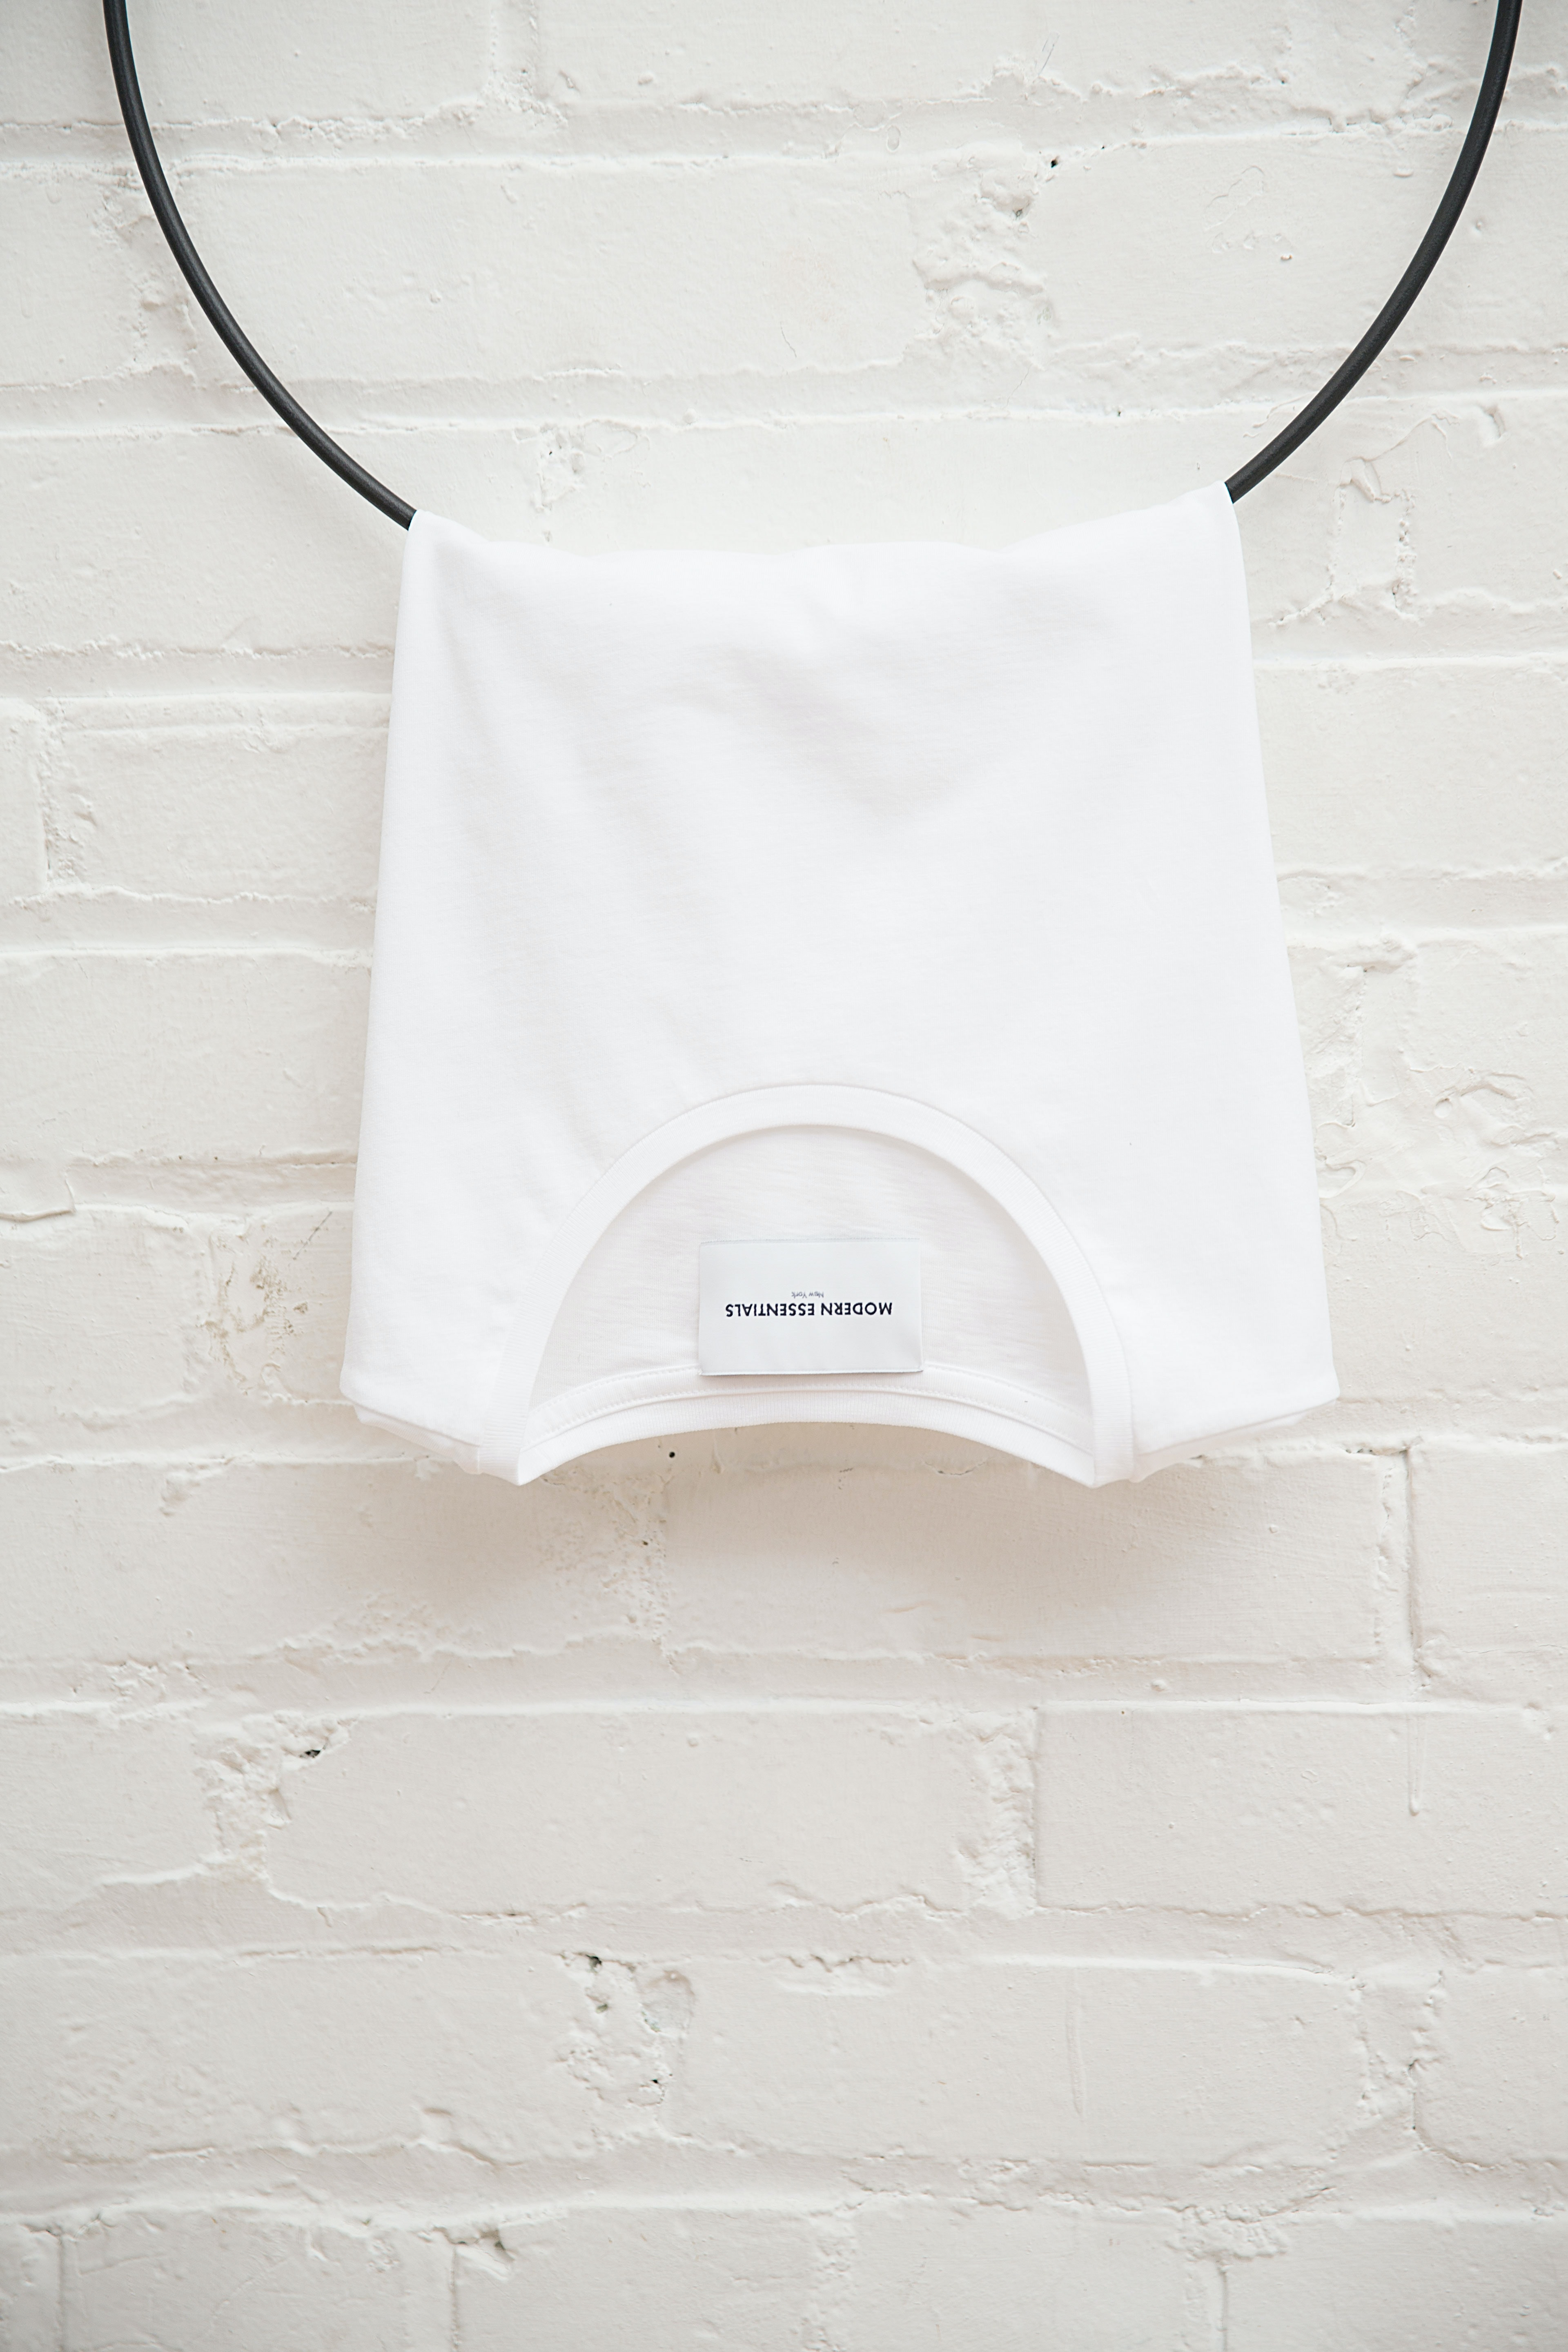 white crew-neck shirt hanging on black cable